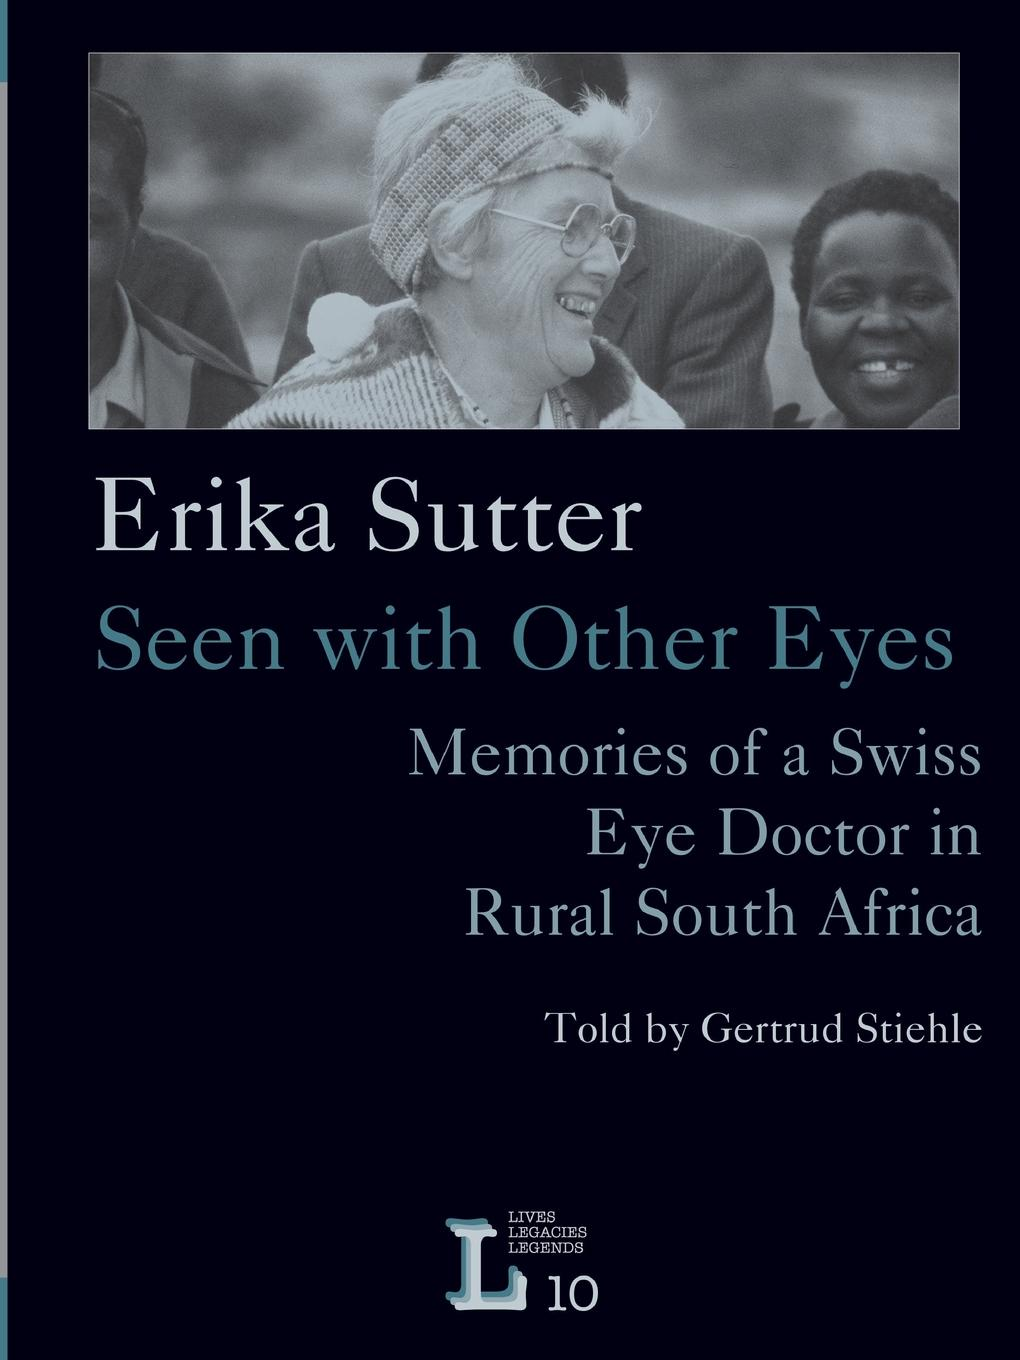 цена на Gertrud Stiehle Erika Sutter. Seen with Other Eyes. Memories of a Swiss Eye Doctor in Rural South Africa